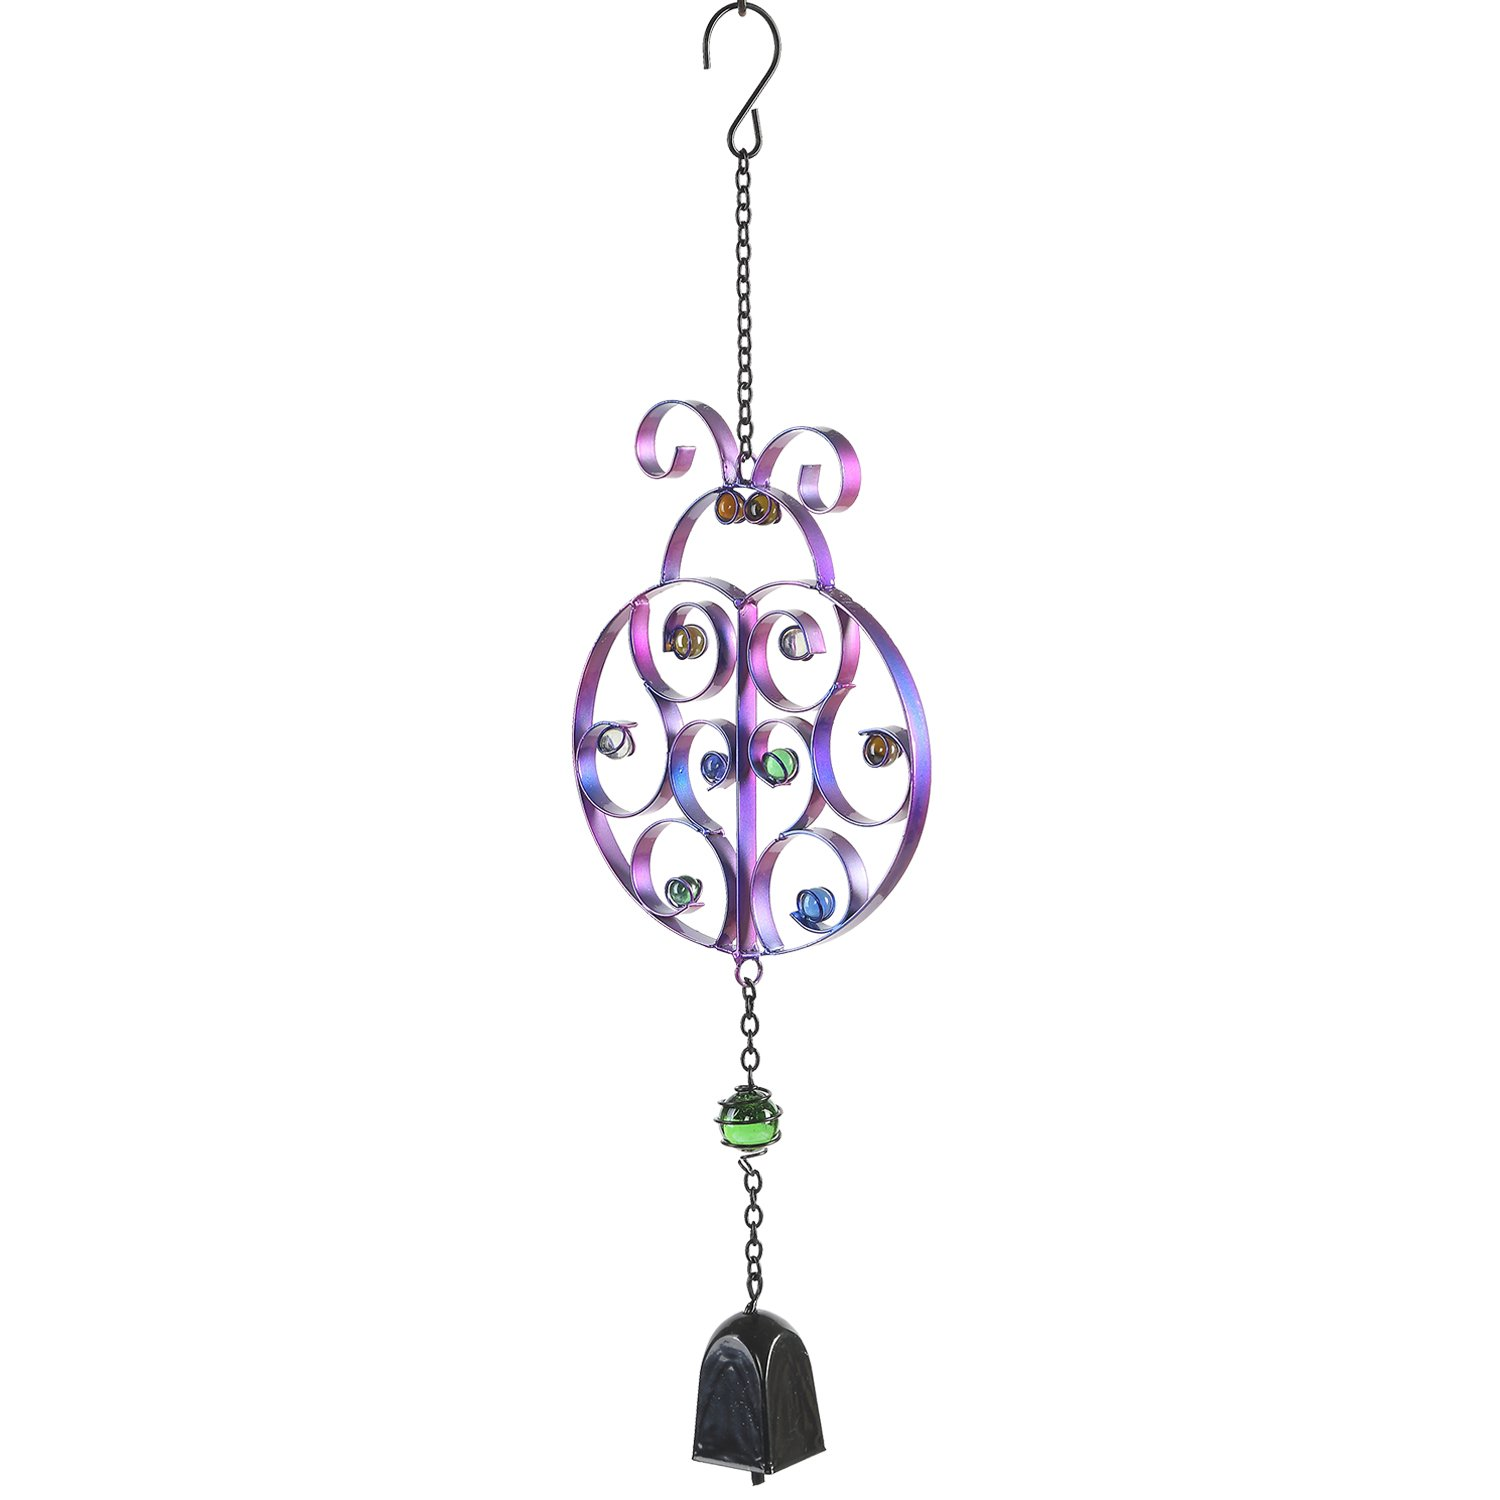 CEDAR HOME Wind Chime Unique Outdoor Indoor Hanging Mobile Bell Windchime for Garden Lawn Yard Patio Waterproof Metal Glass Home Decor, 7.75'' W x 1.5'' D x 20'' H, Ladybug